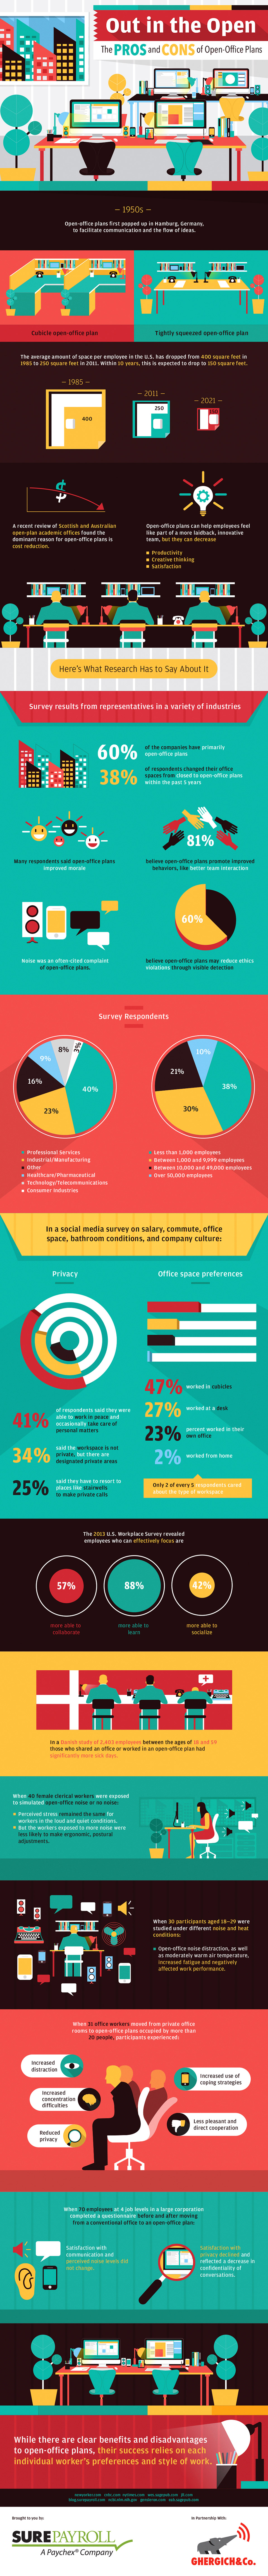 Open plan offices – pros and cons (infographic)